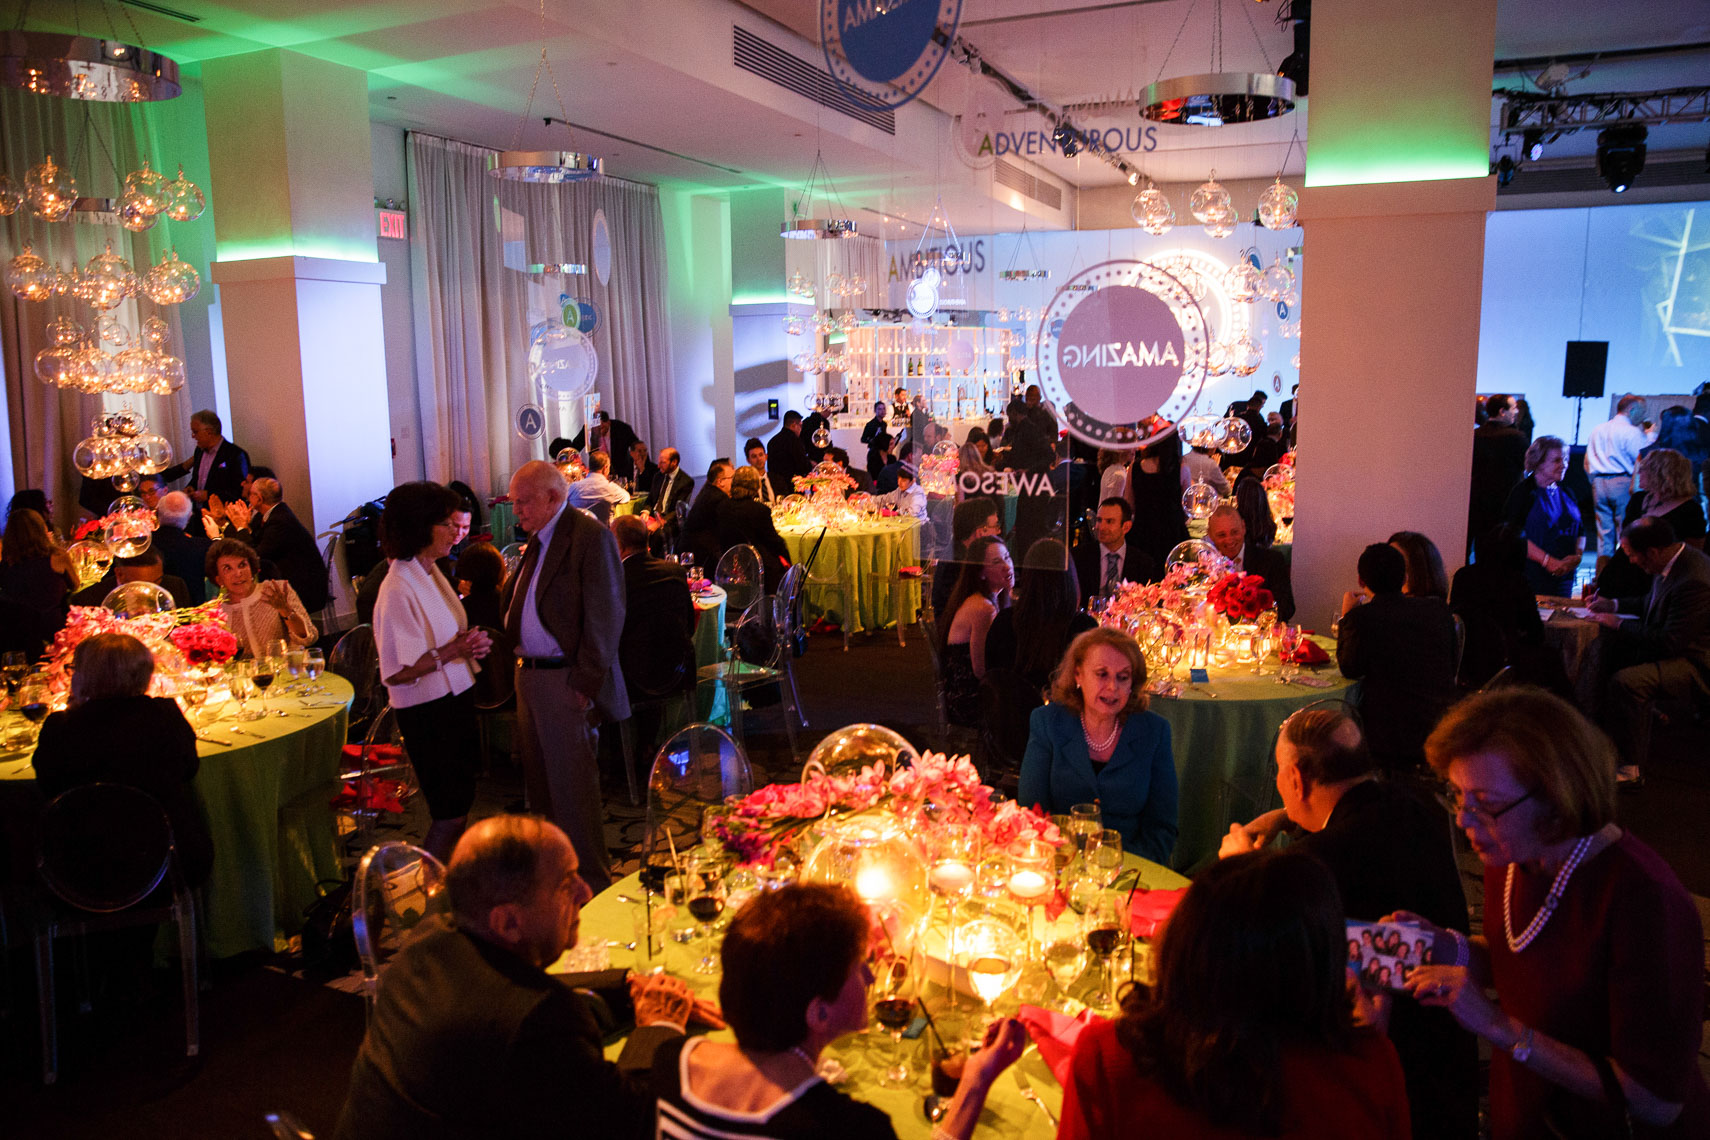 Kathi-Littwin-Event-Photography-Espace-1015